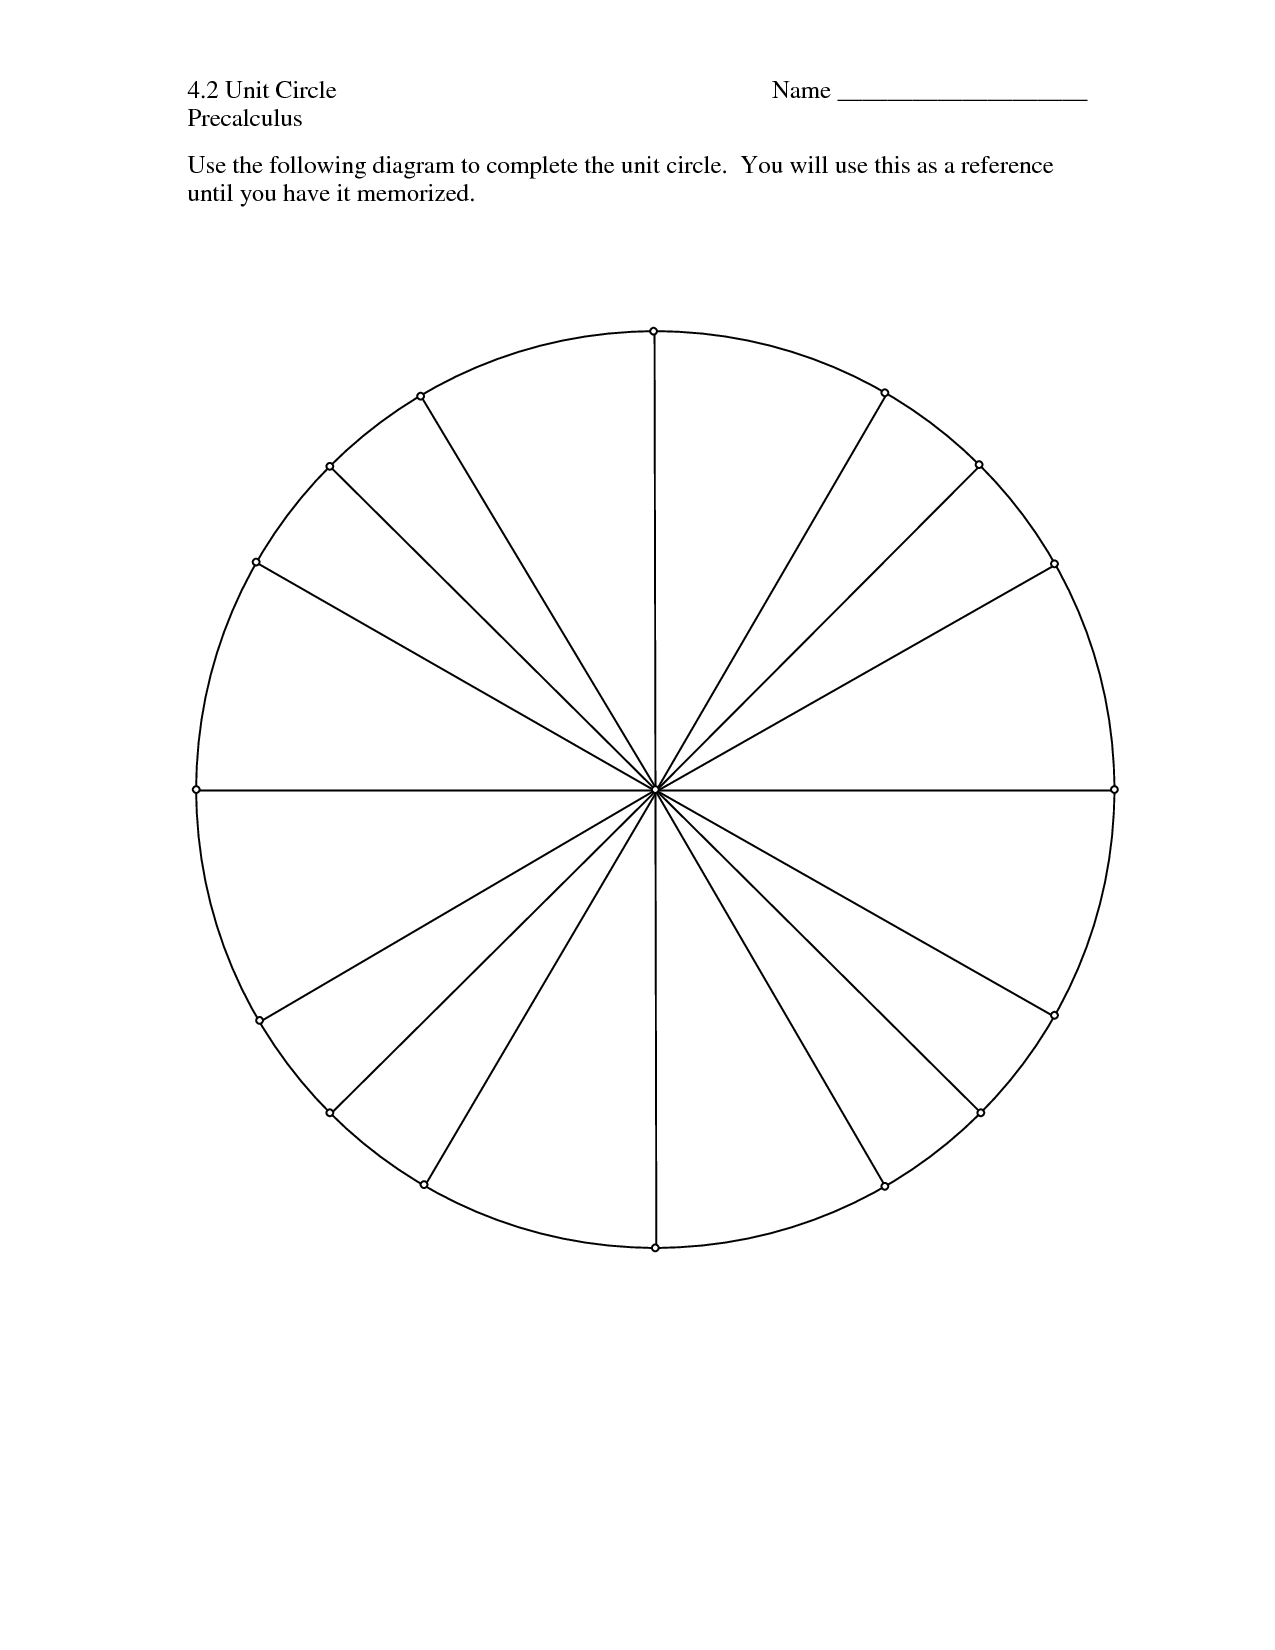 blank unit circle worksheet free worksheets library download and print worksheets free on. Black Bedroom Furniture Sets. Home Design Ideas